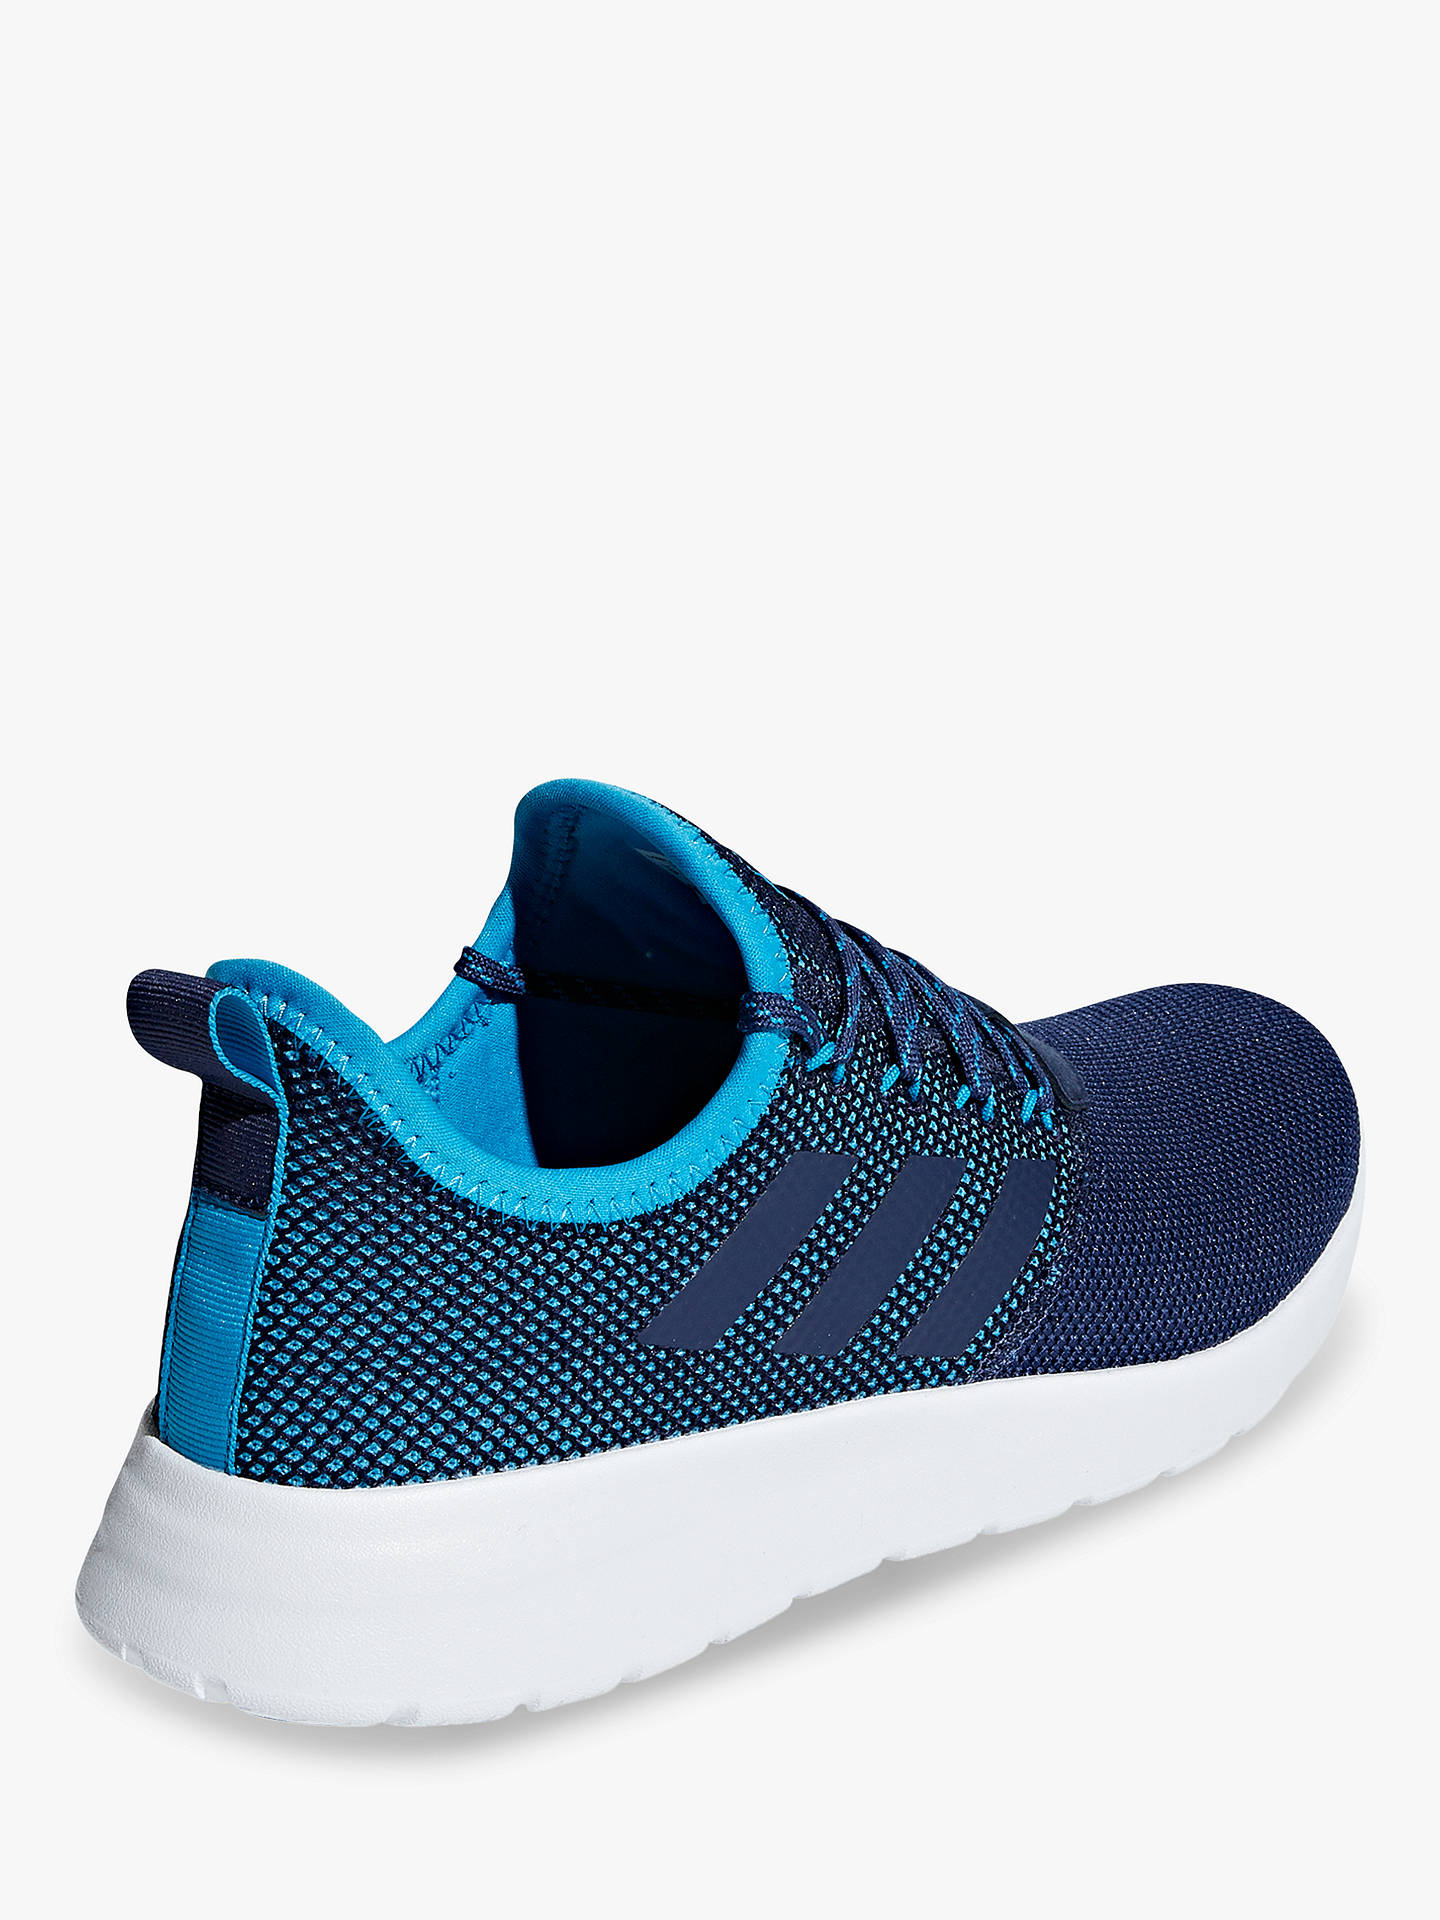 best authentic 7cc7a b5662 ... Buy adidas Lite Racer RBN Men s Trainers, Dark Blue Shock Cyan, 7  Online ...